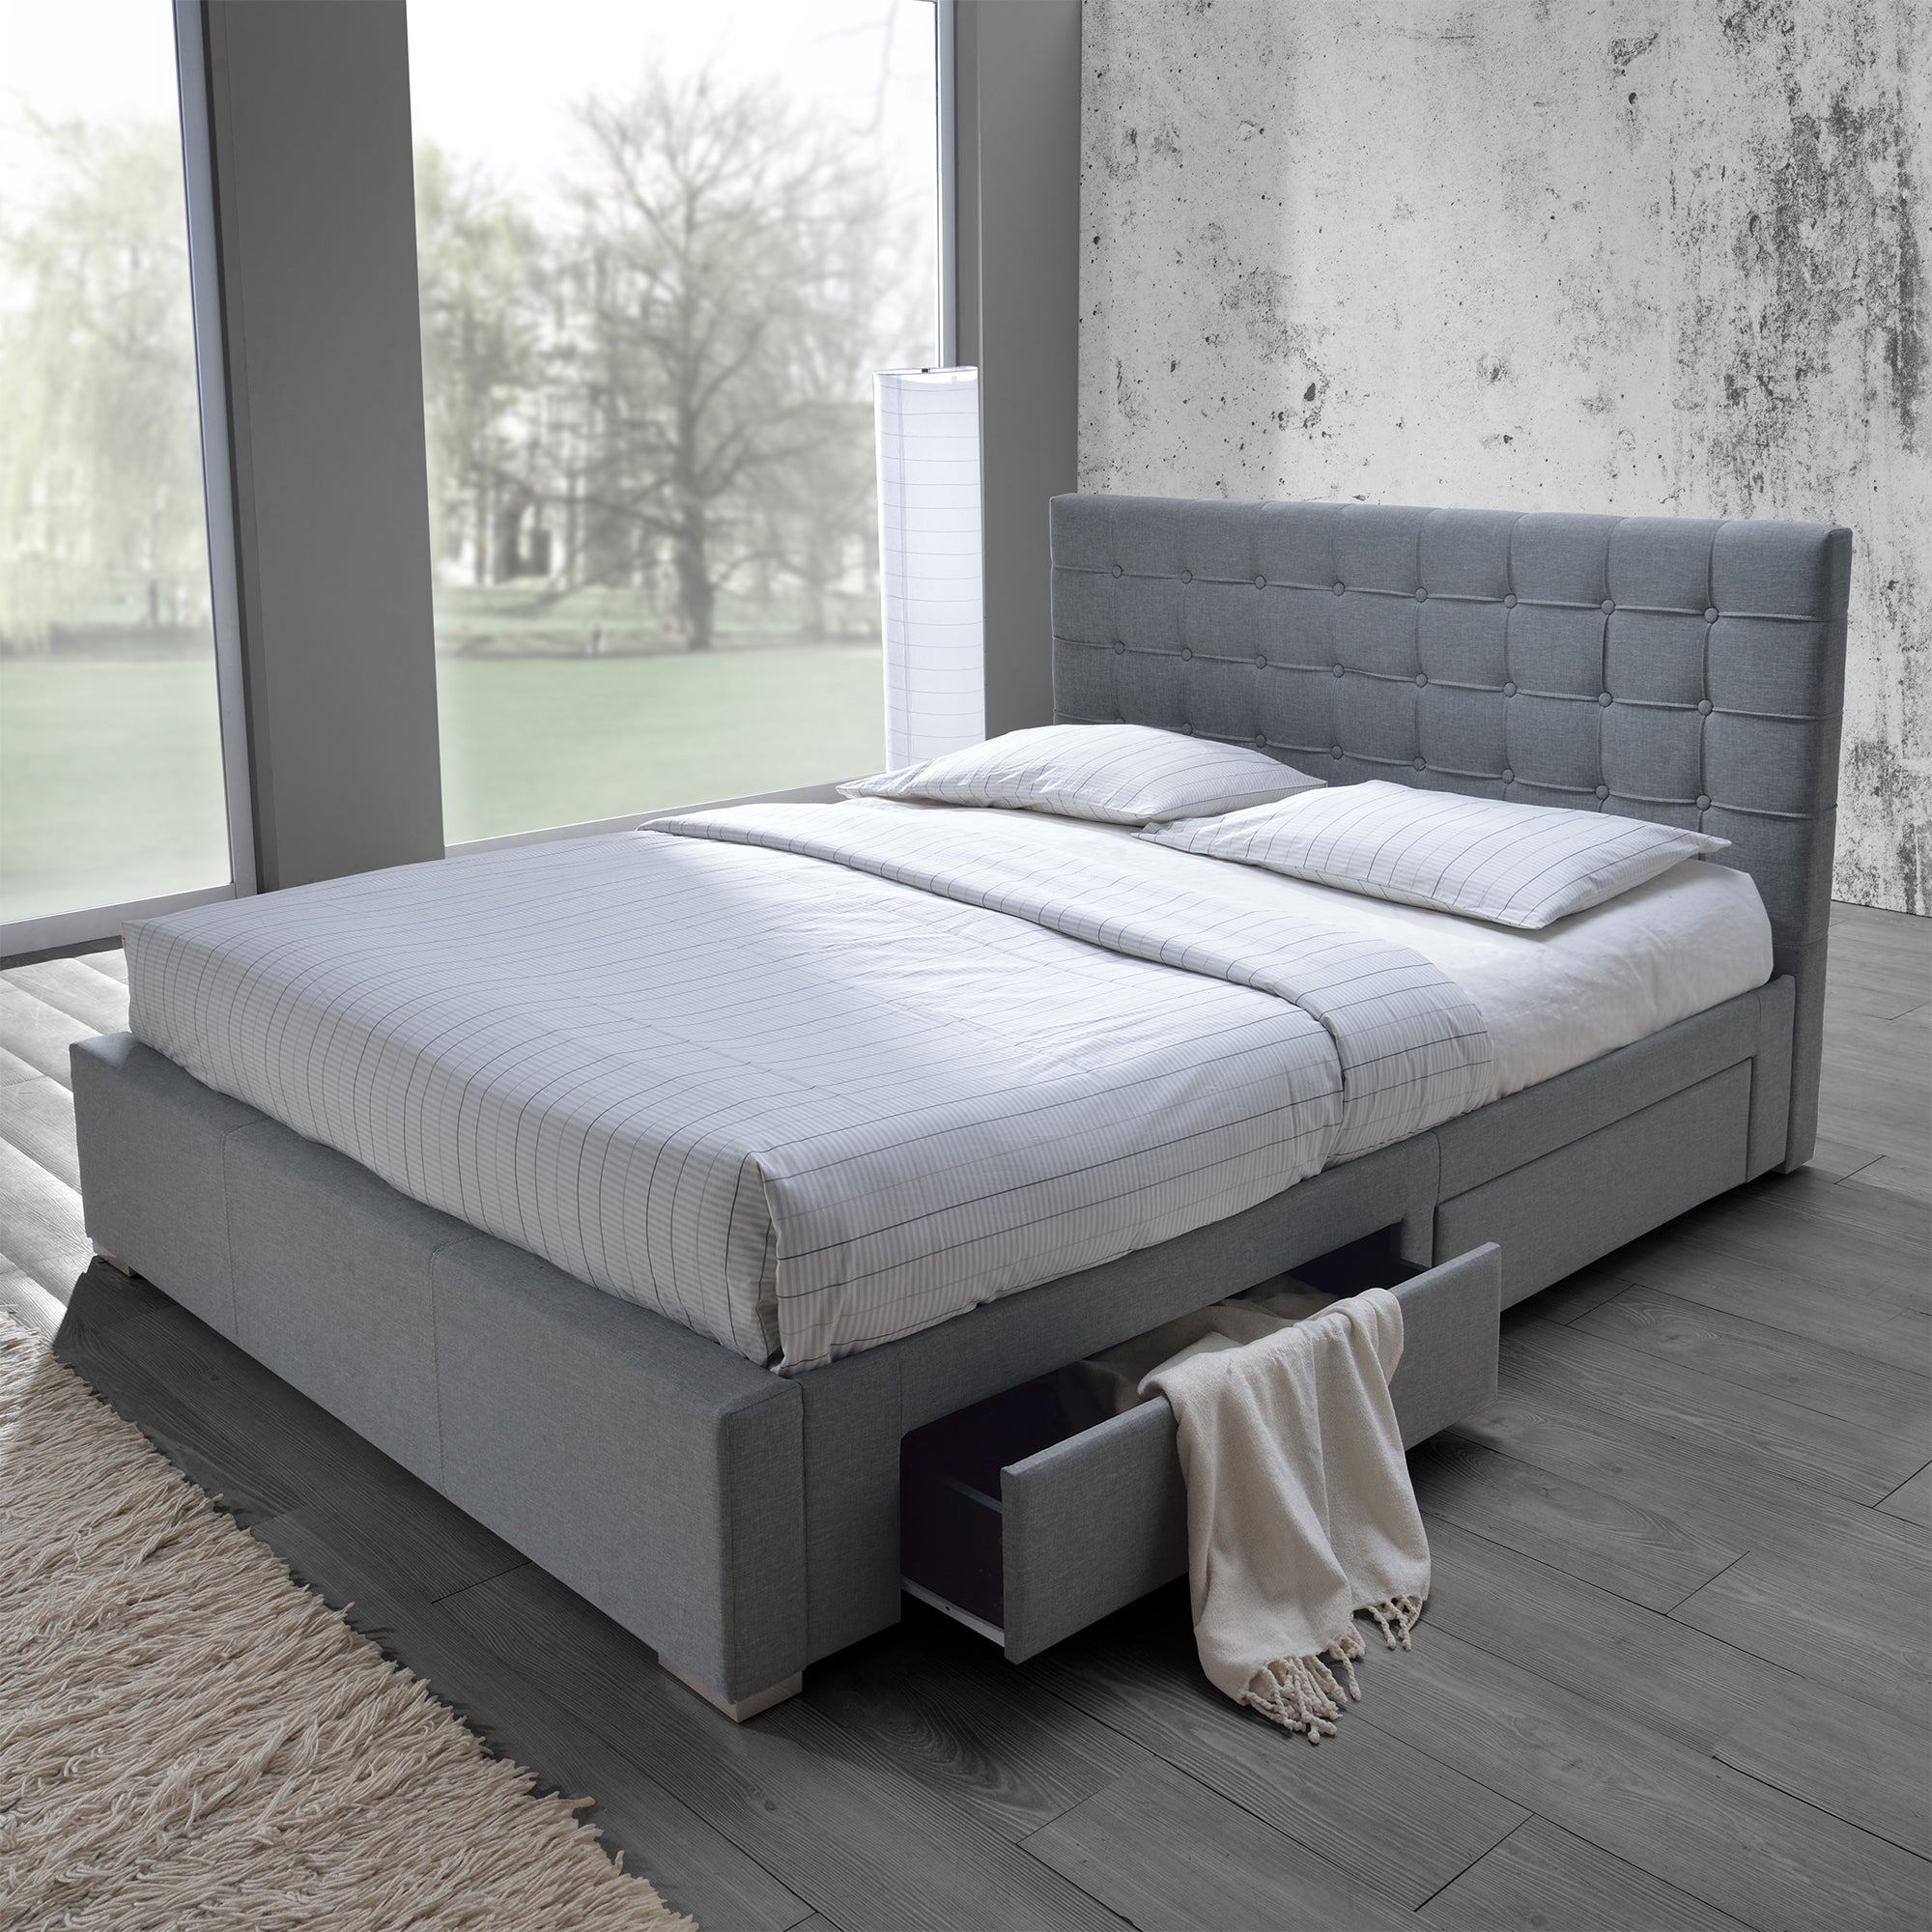 Shop Black Friday Deals On Baxton Studio Adonis Modern And Contemporary Grey Fabric 4 Drawer Queen Size Storage Platform Bed Overstock 20543703